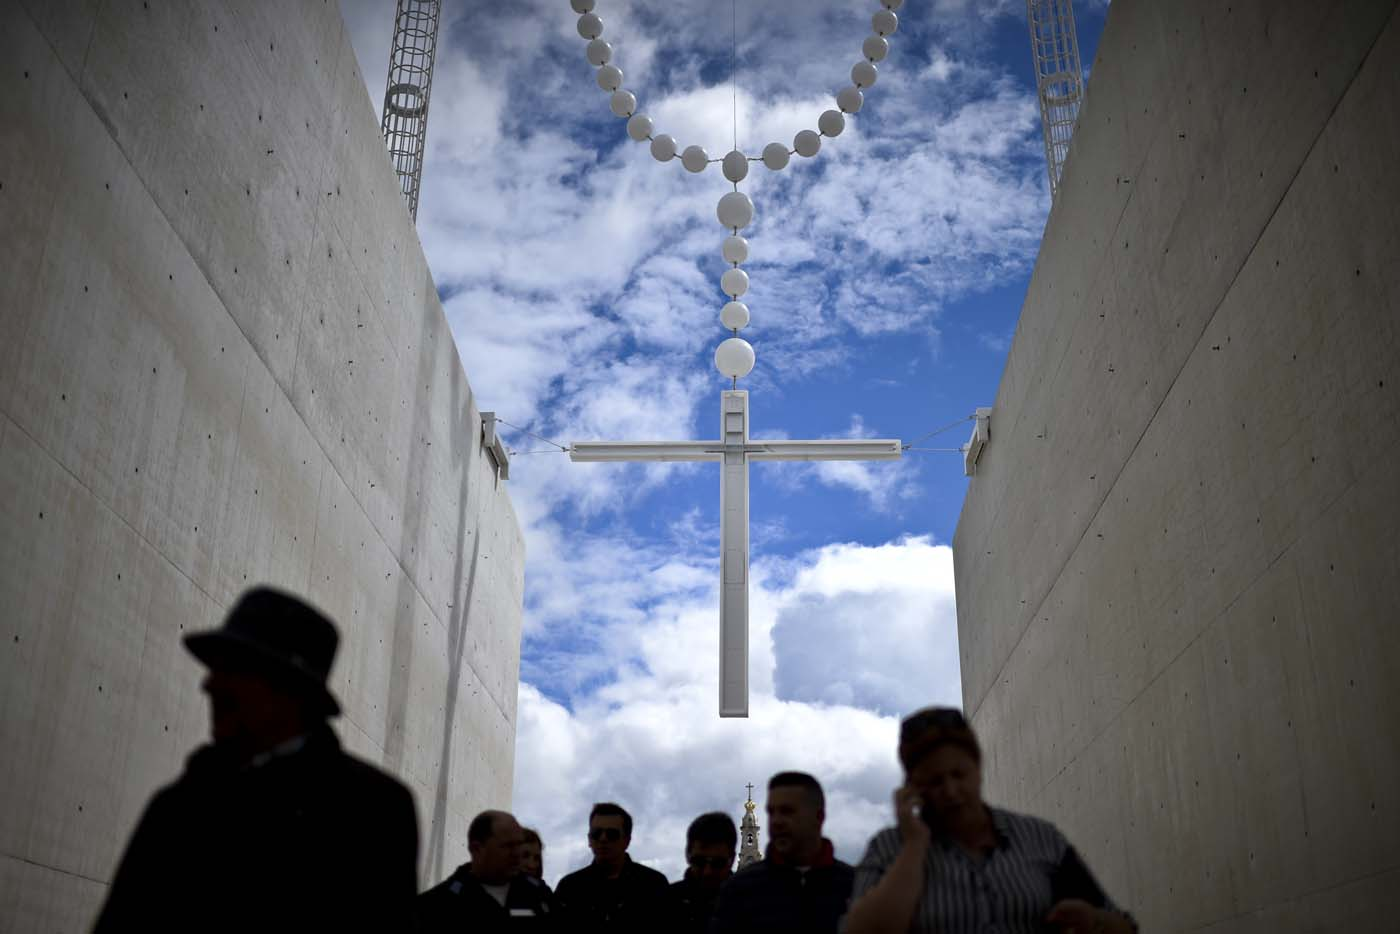 People walk under a giant rosary hanging at Fatima Sanctuary in Fatima, central Portugal, on May 12, 2017.   Two of the three child shepherds who reported apparitions of the Virgin Mary in Fatima, Portugal, one century ago, will be declared saints on May 13, 2017 by Pope Francis. The canonisation of Jacinta and Francisco Marto will take place during the Argentinian pontiff's visit to a Catholic shrine visited by millions of pilgrims every year. / AFP PHOTO / PATRICIA DE MELO MOREIRA